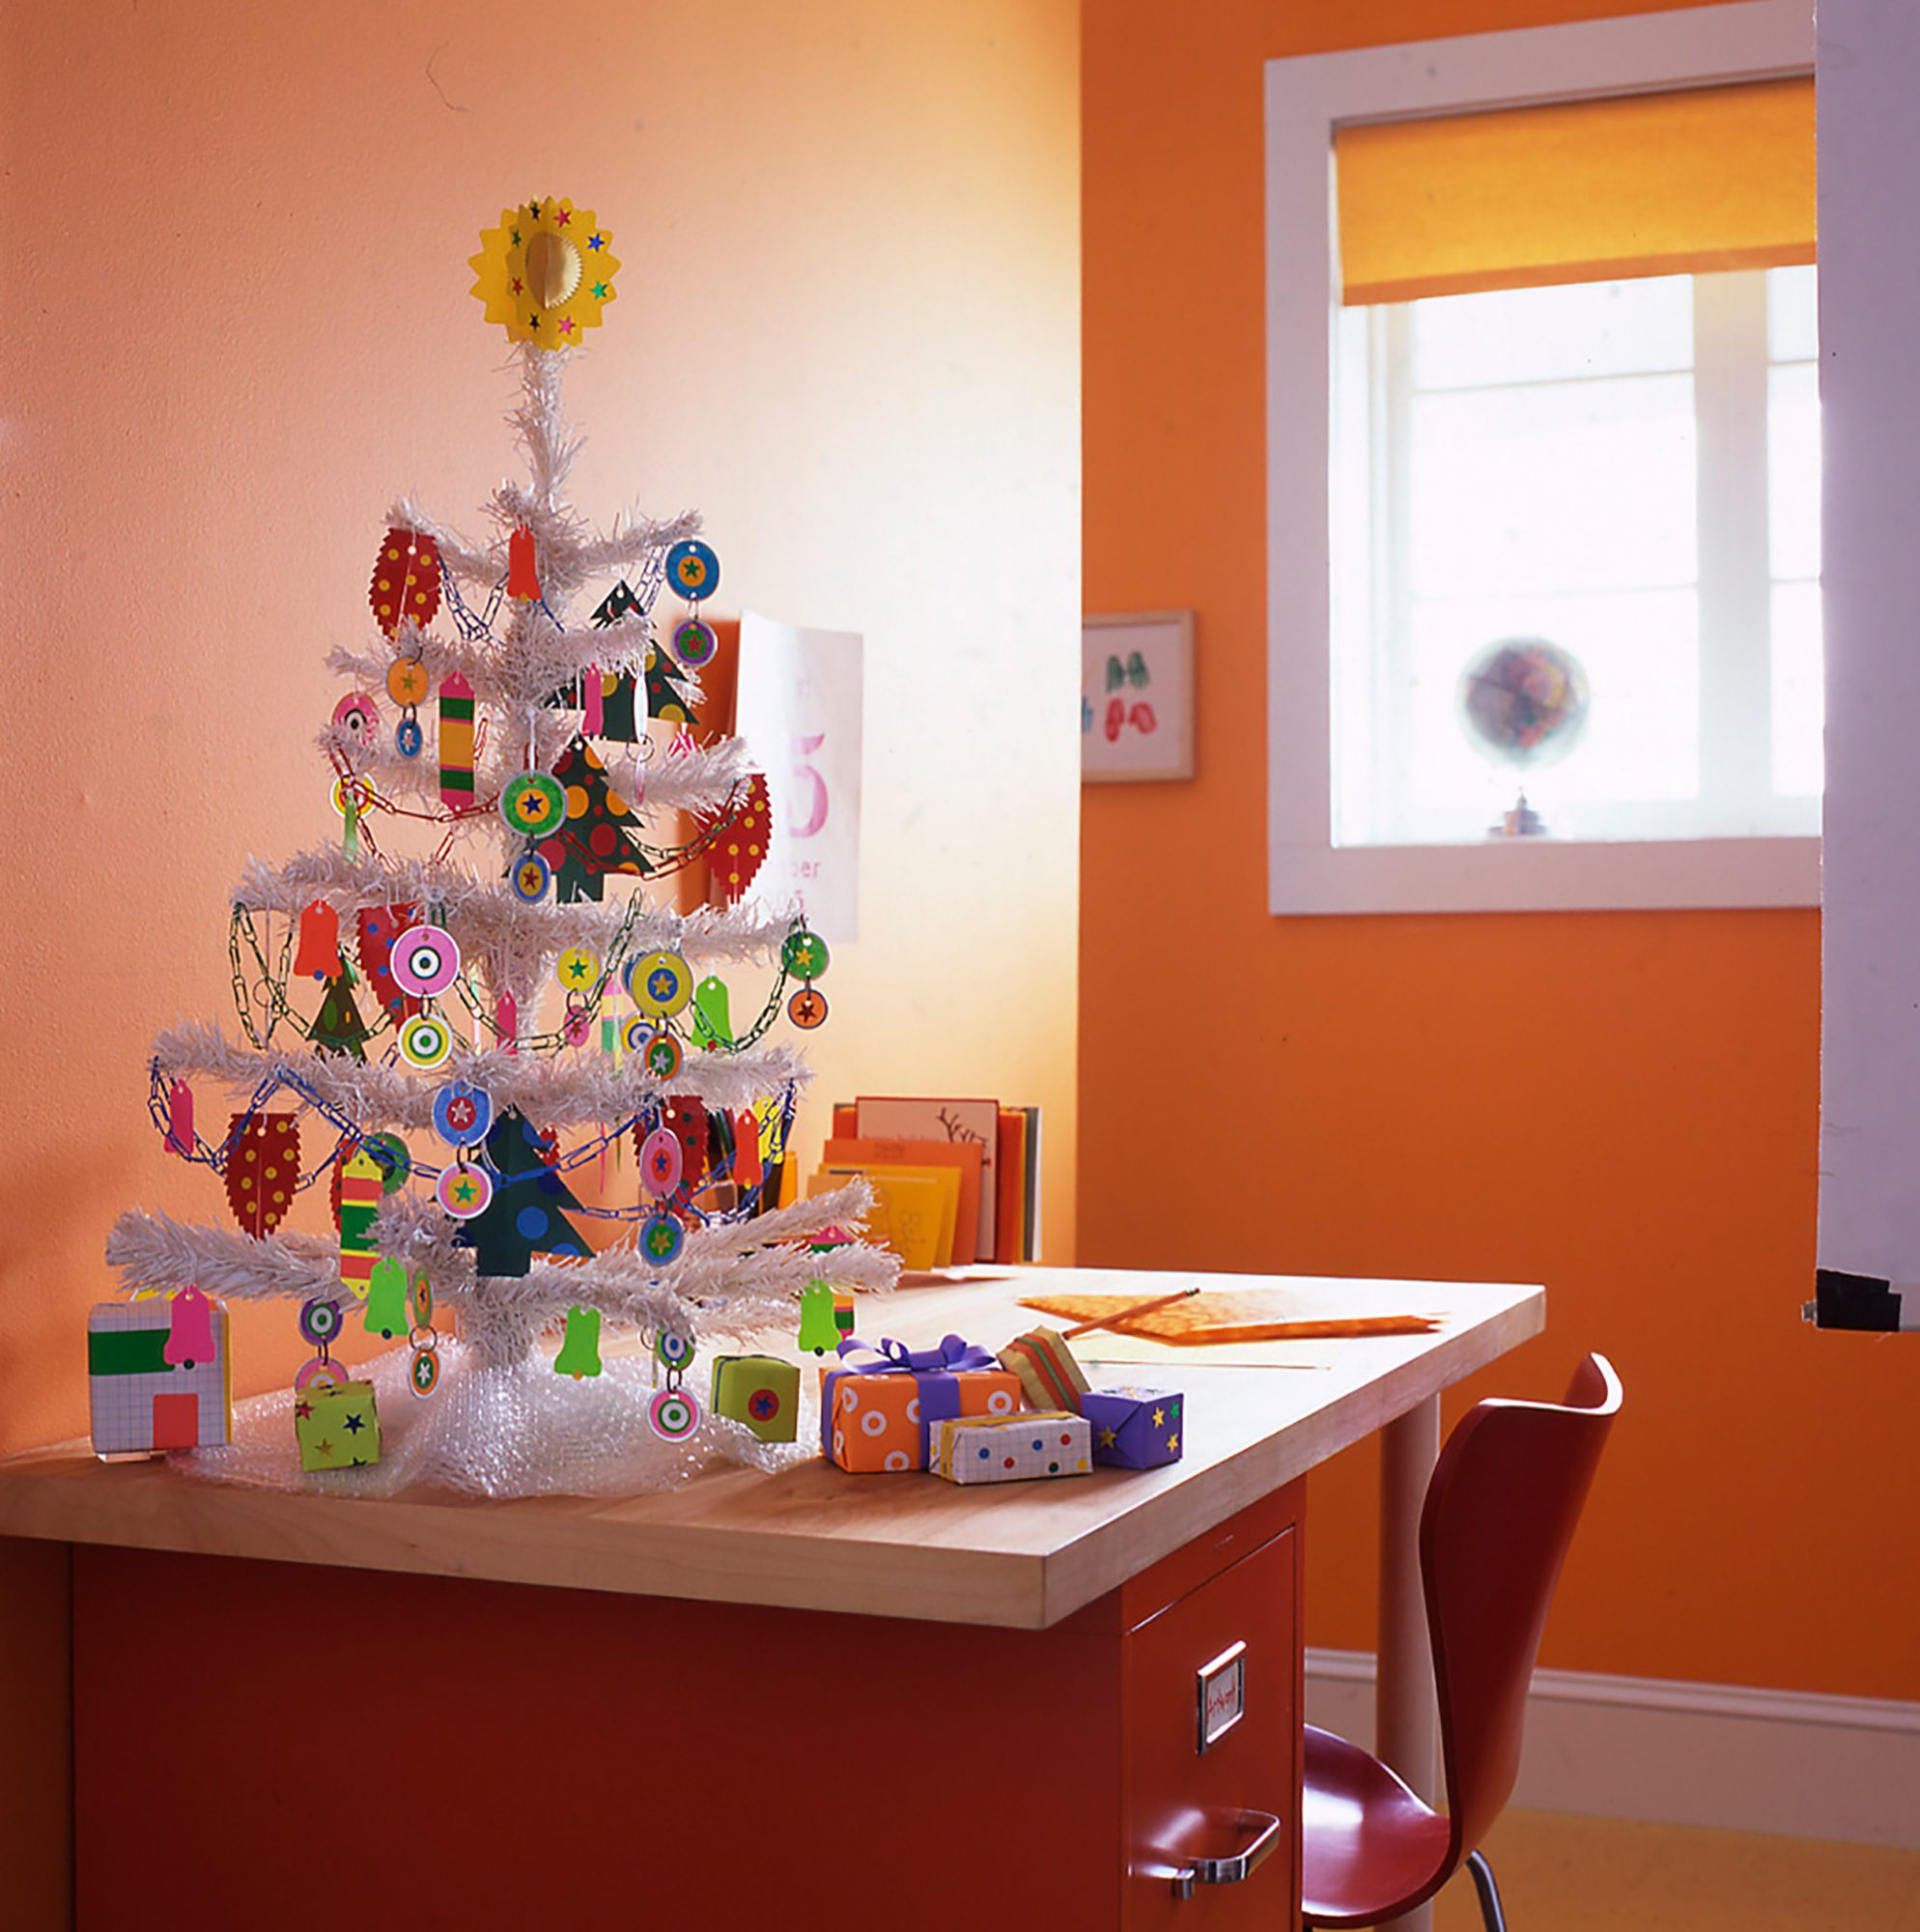 """Office-supply stores have all the trimmings for a tree that belies its workaday origins. Key tags decorated with stickers, ornaments cut from file folders, and paper-clip chains dangle from the branches. A bubble-packaging tree skirt and presents dressed up in graph paper, stickers, and rubber bands circle the base.Shop Now: Staples 5/16"""" Bubble Roll, $8, staples.com. Staples Smooth Paper Clips, $2 for 100, staples.com. HoneyWell Colored Key Tags, $10 for 20, staples.com."""